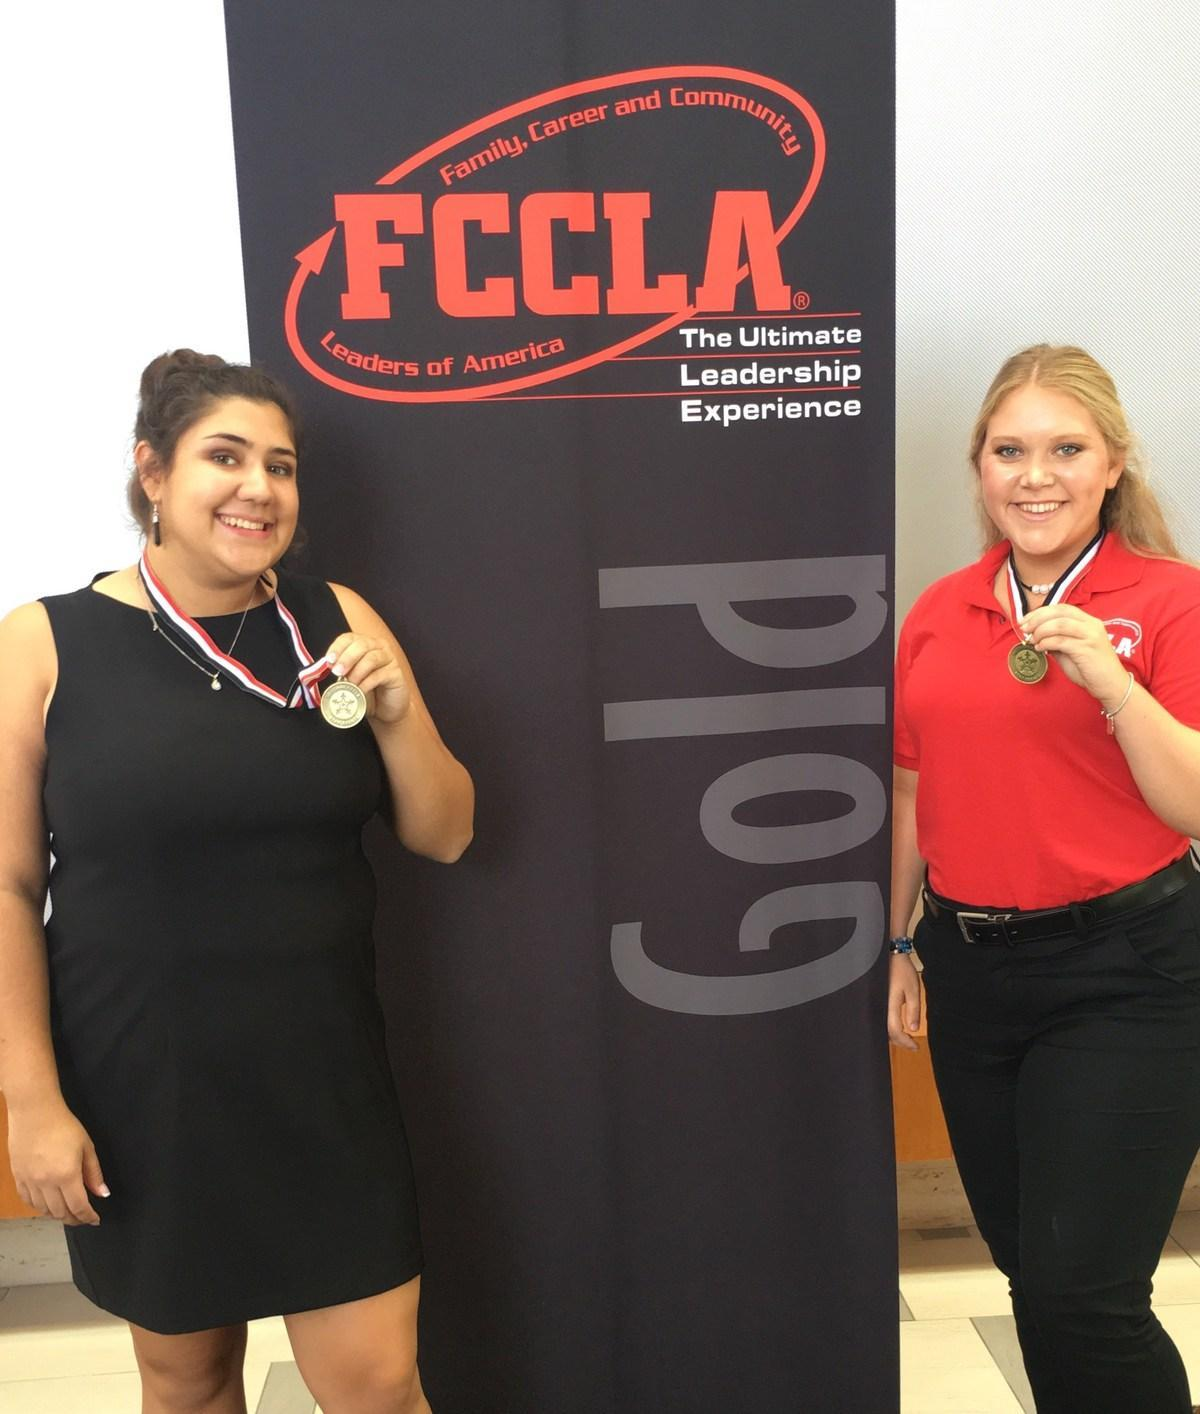 National Champions Jessica Padron and Hannah Mulford created Beautiful Too, a program for 8th grade girls